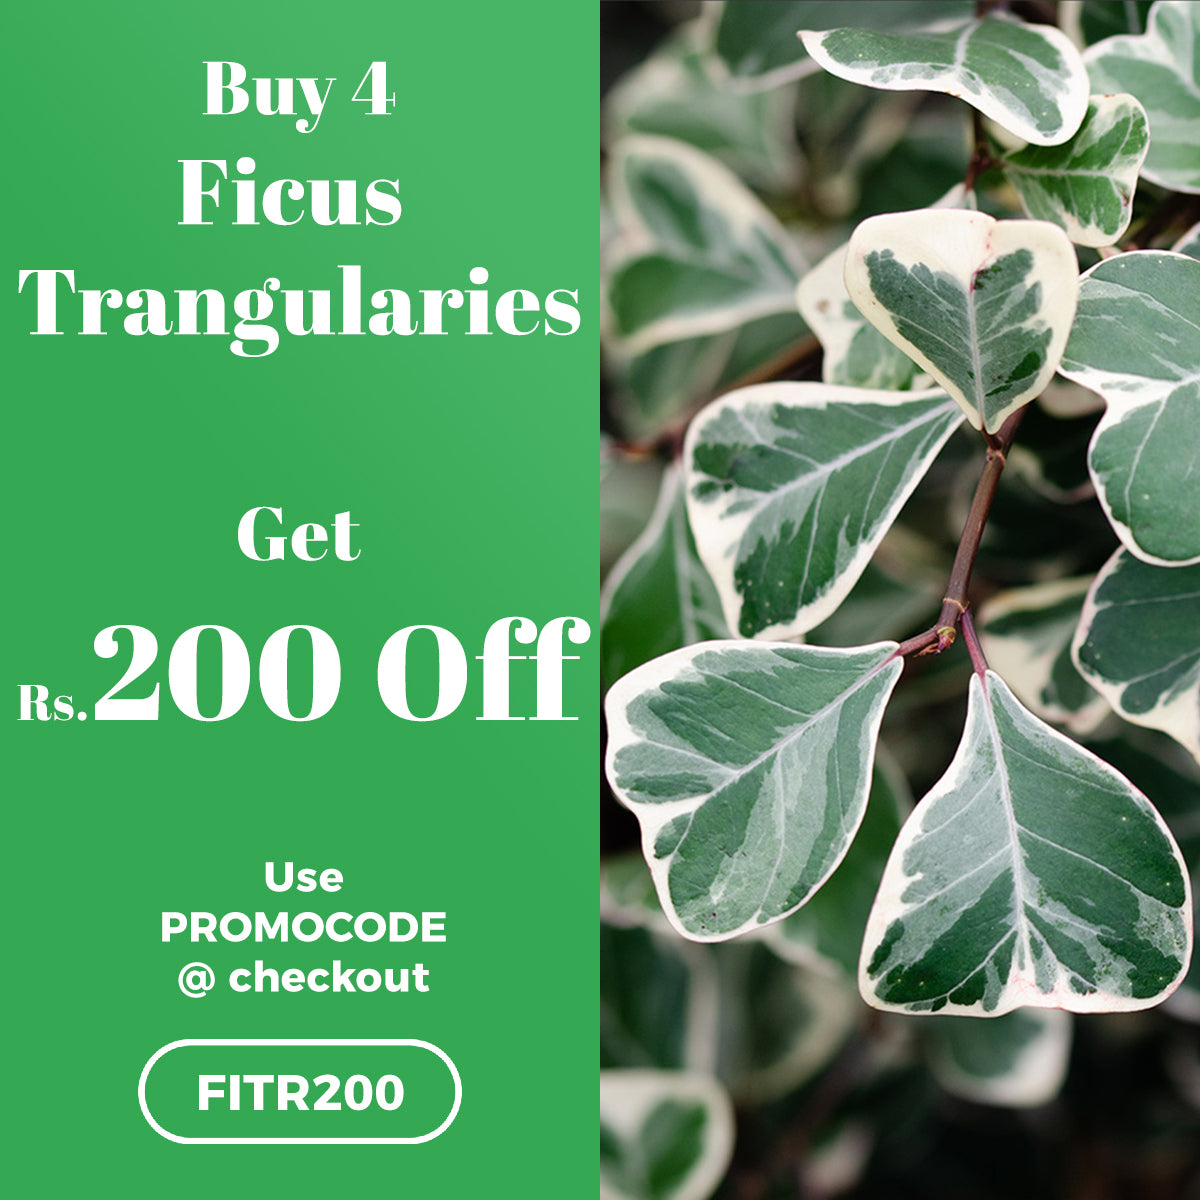 Buy 4 Ficus Trangularies Plant and get Rs.200 OFF